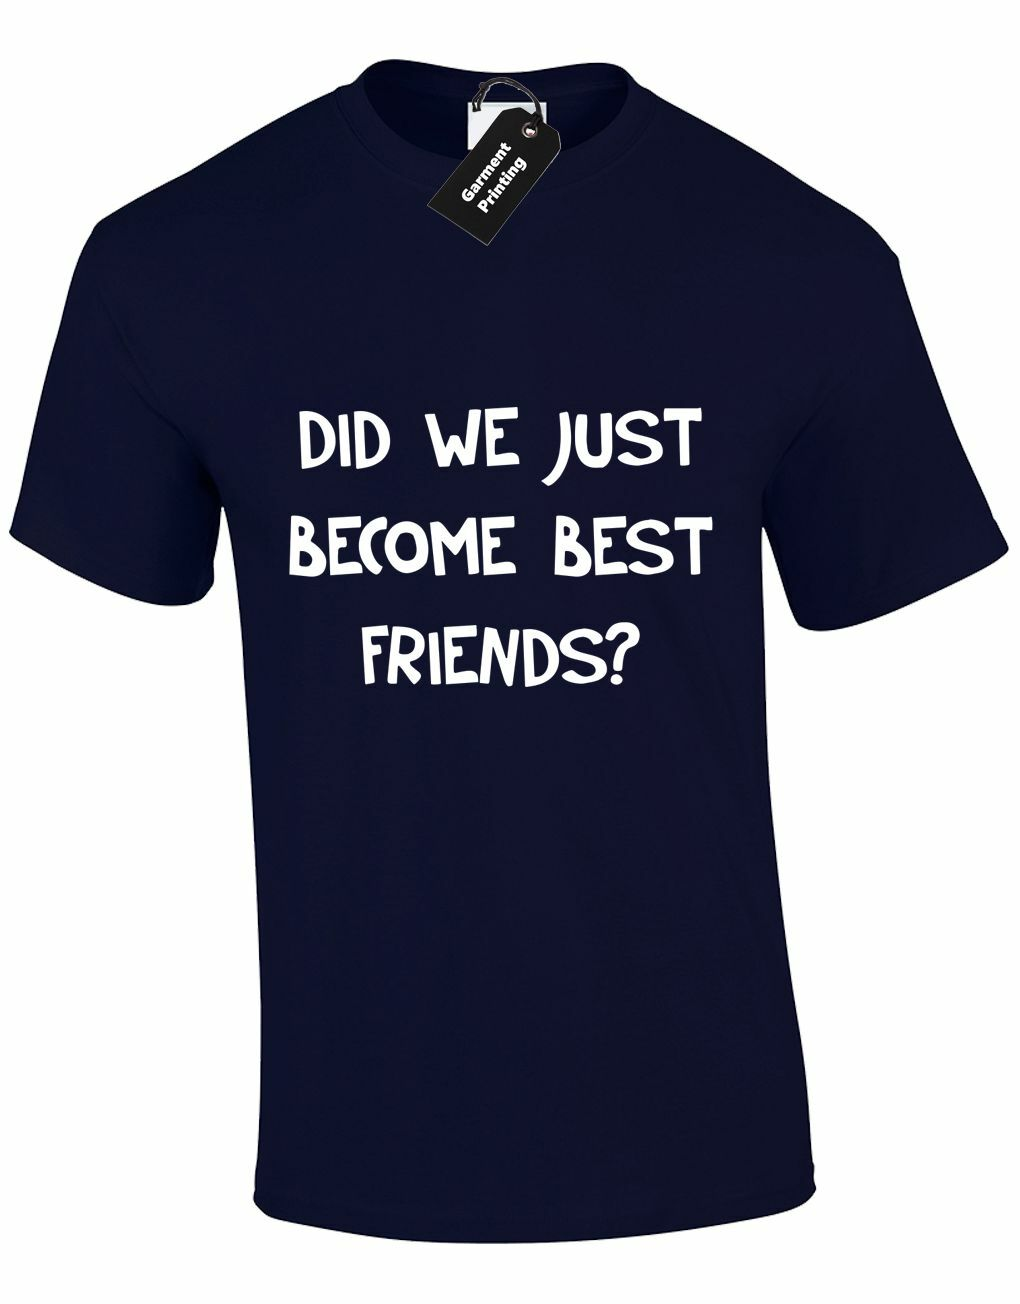 DID WE JUST BECOME BEST FRIENDS FUNNY STEP BROTHERS MENS T SHIRT TEE S-3XL2019 fashionable Brand 781%cotton Printed Round Neck T image